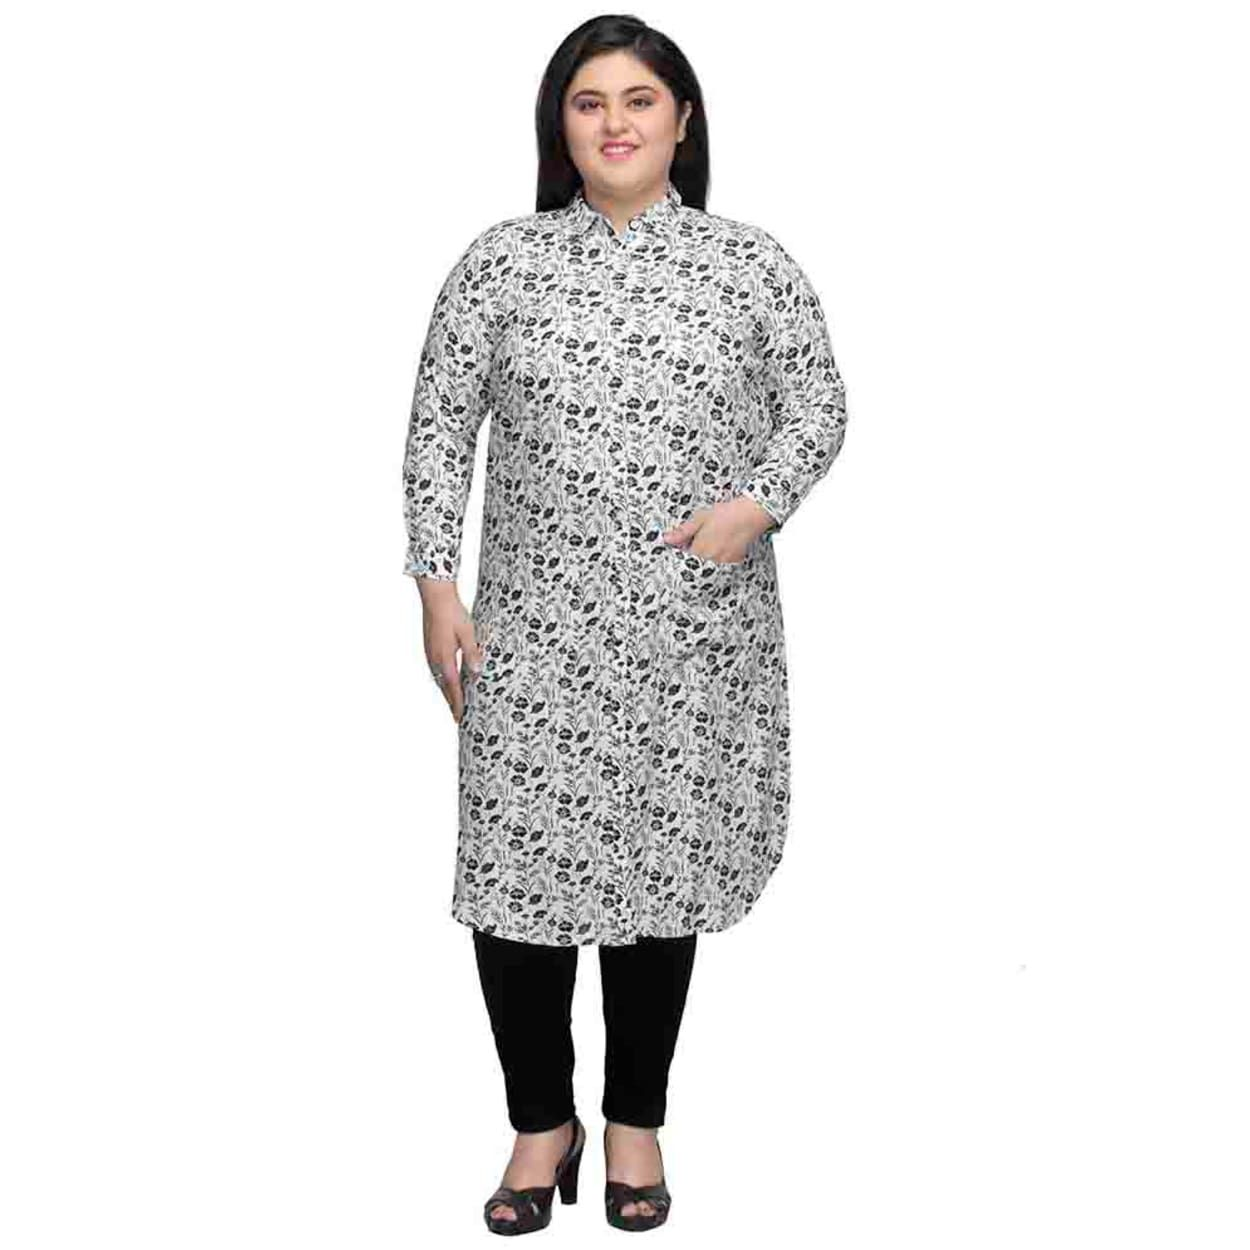 cc0f2fa64ce Get freshest styles at affordable price in plus size! Our collection  consists stylish dresses